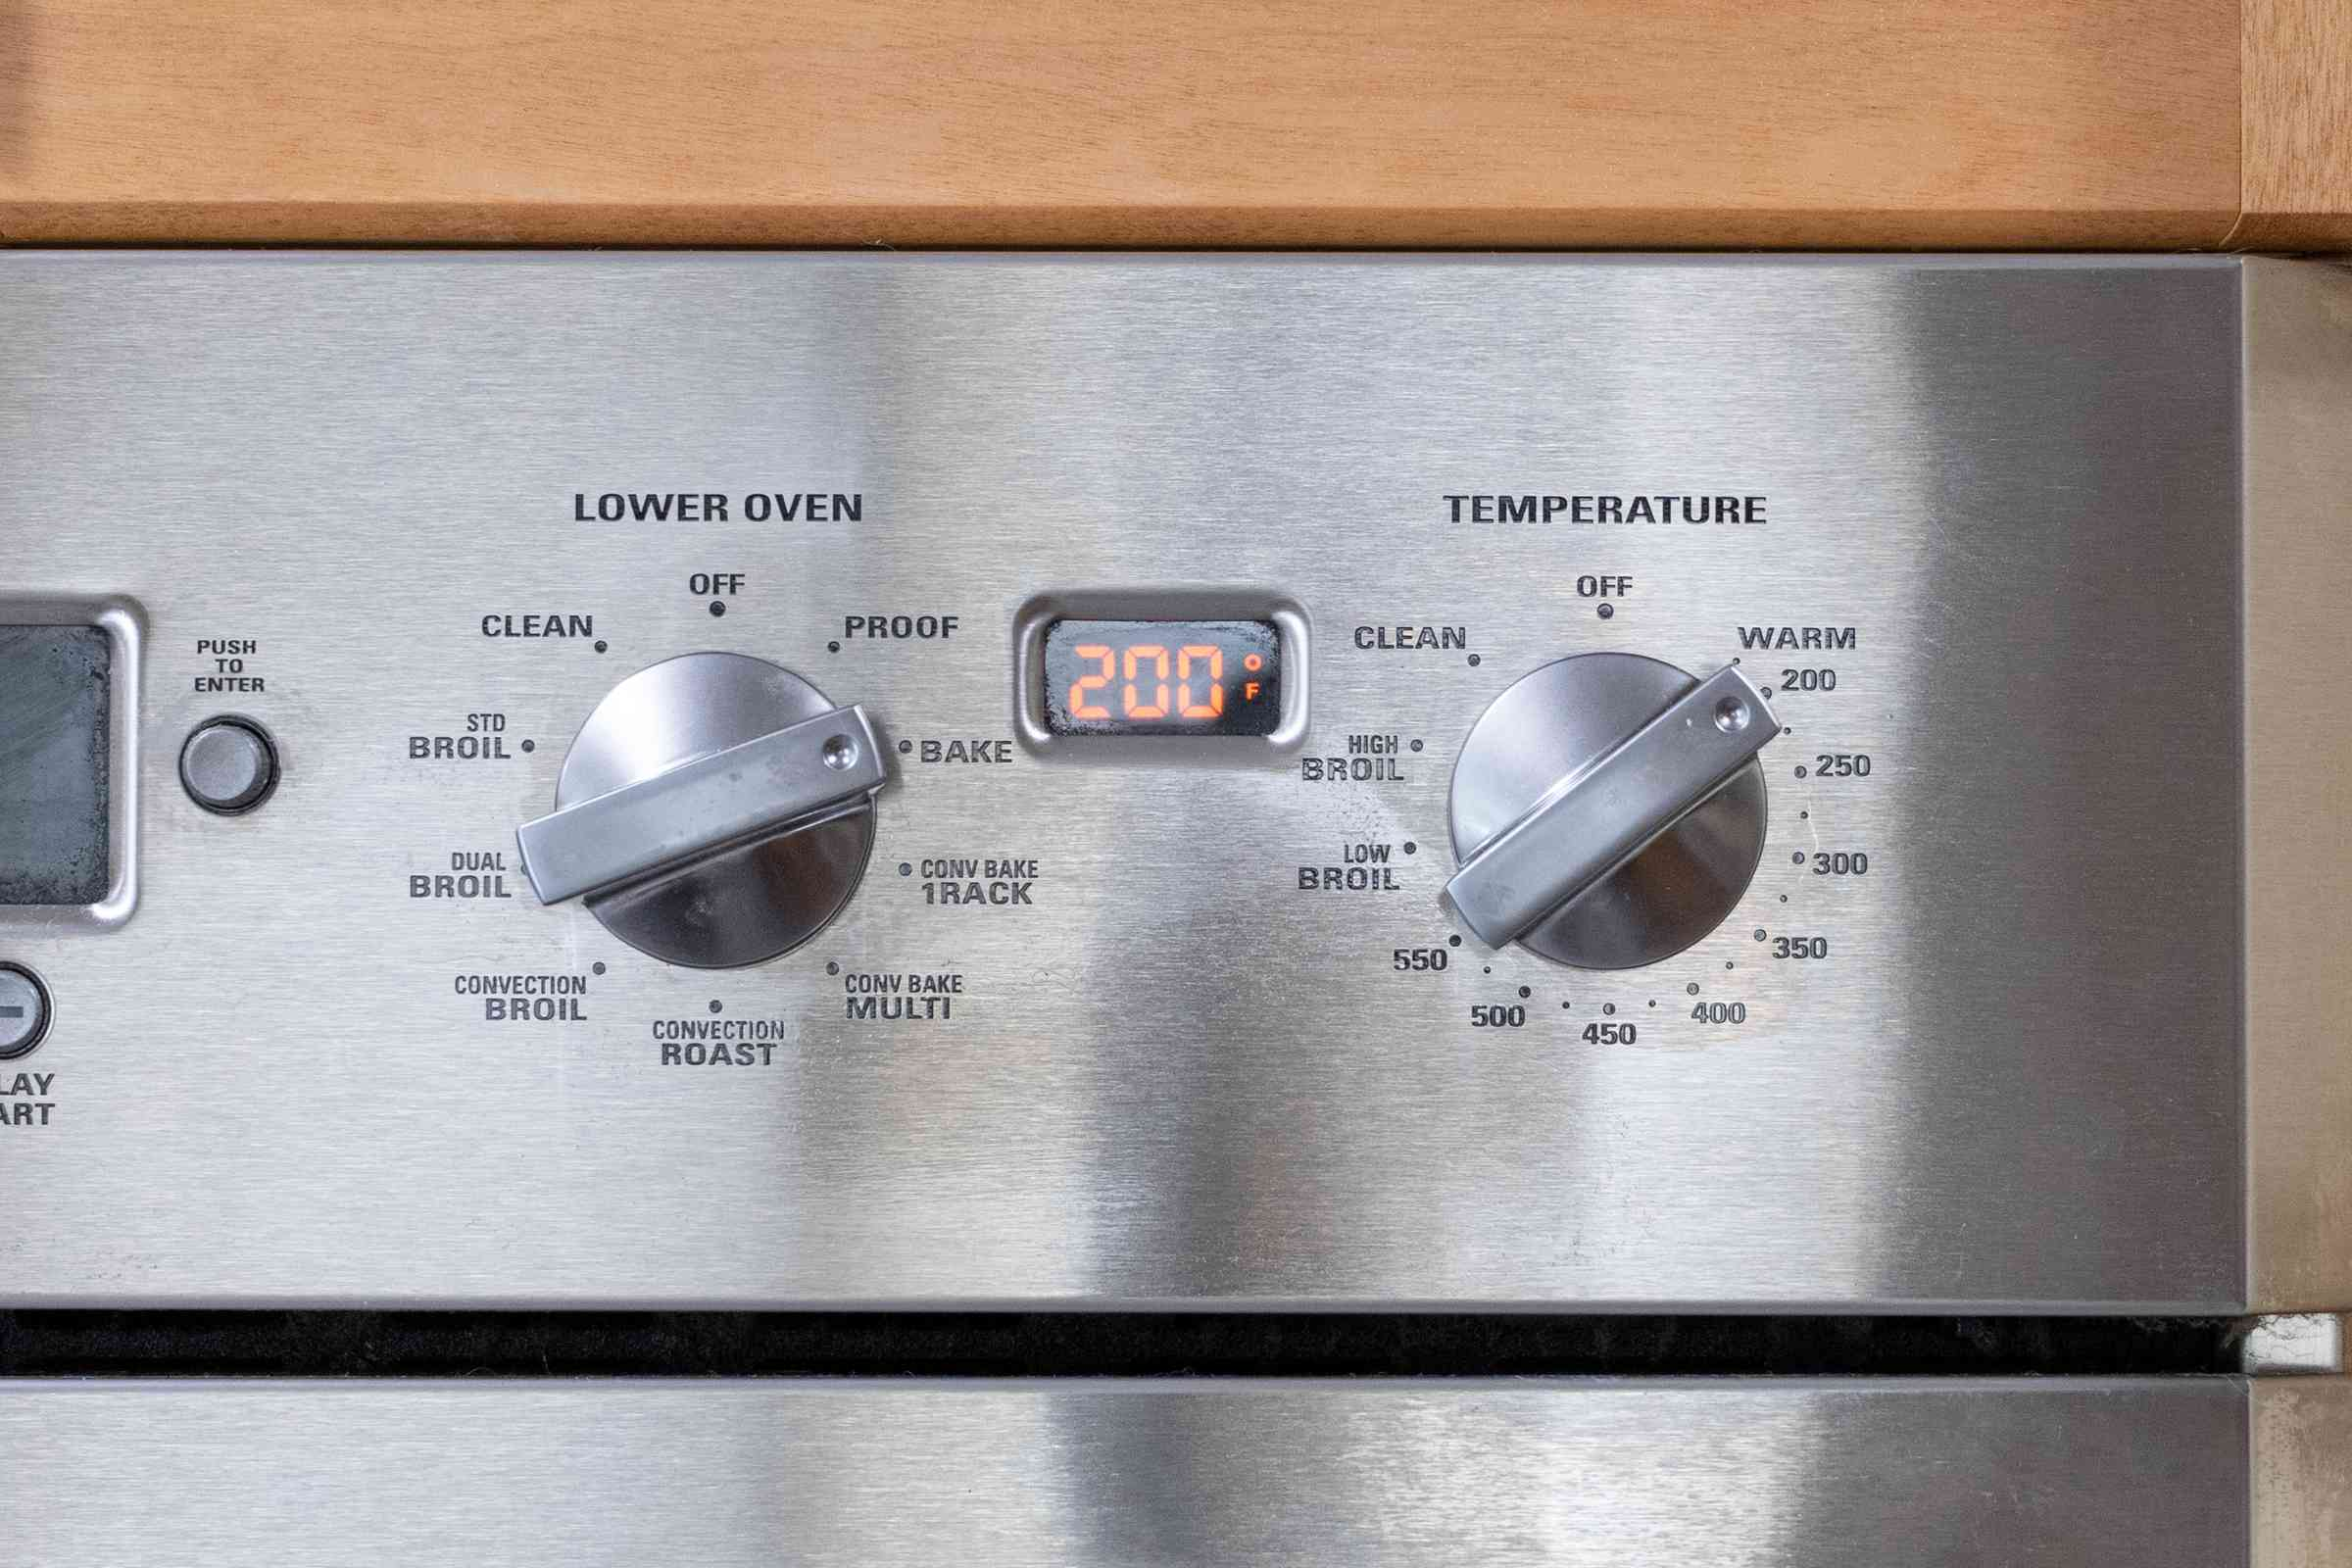 heat the oven to 200 F